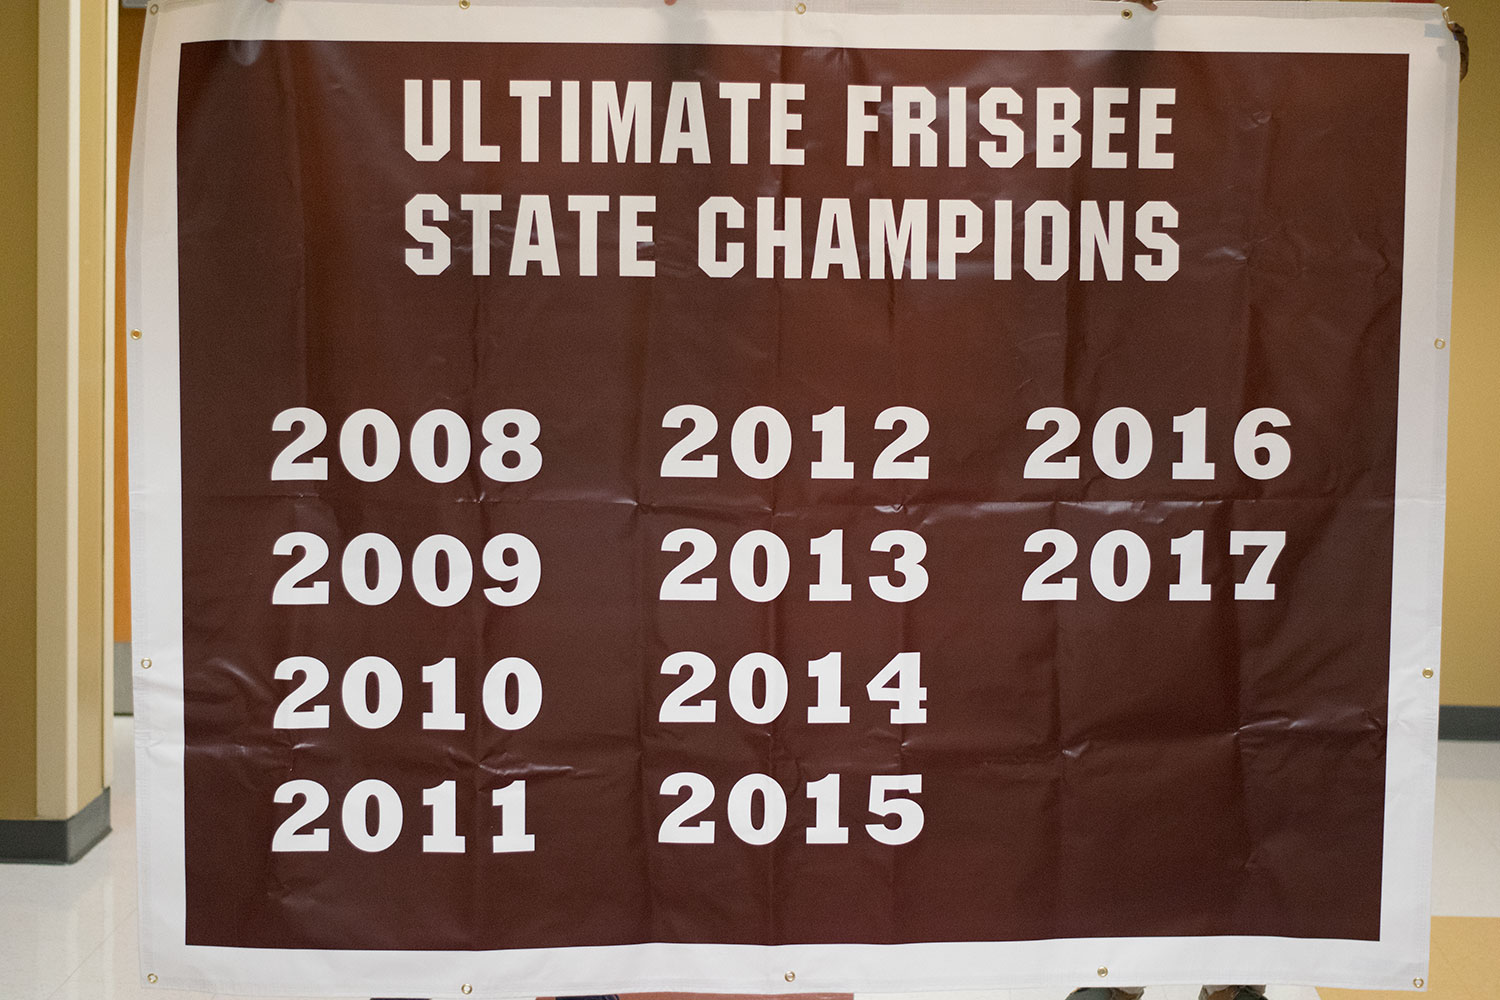 All ten years of winning state shown on the new ultimate Frisbee banner, with extra room for more.